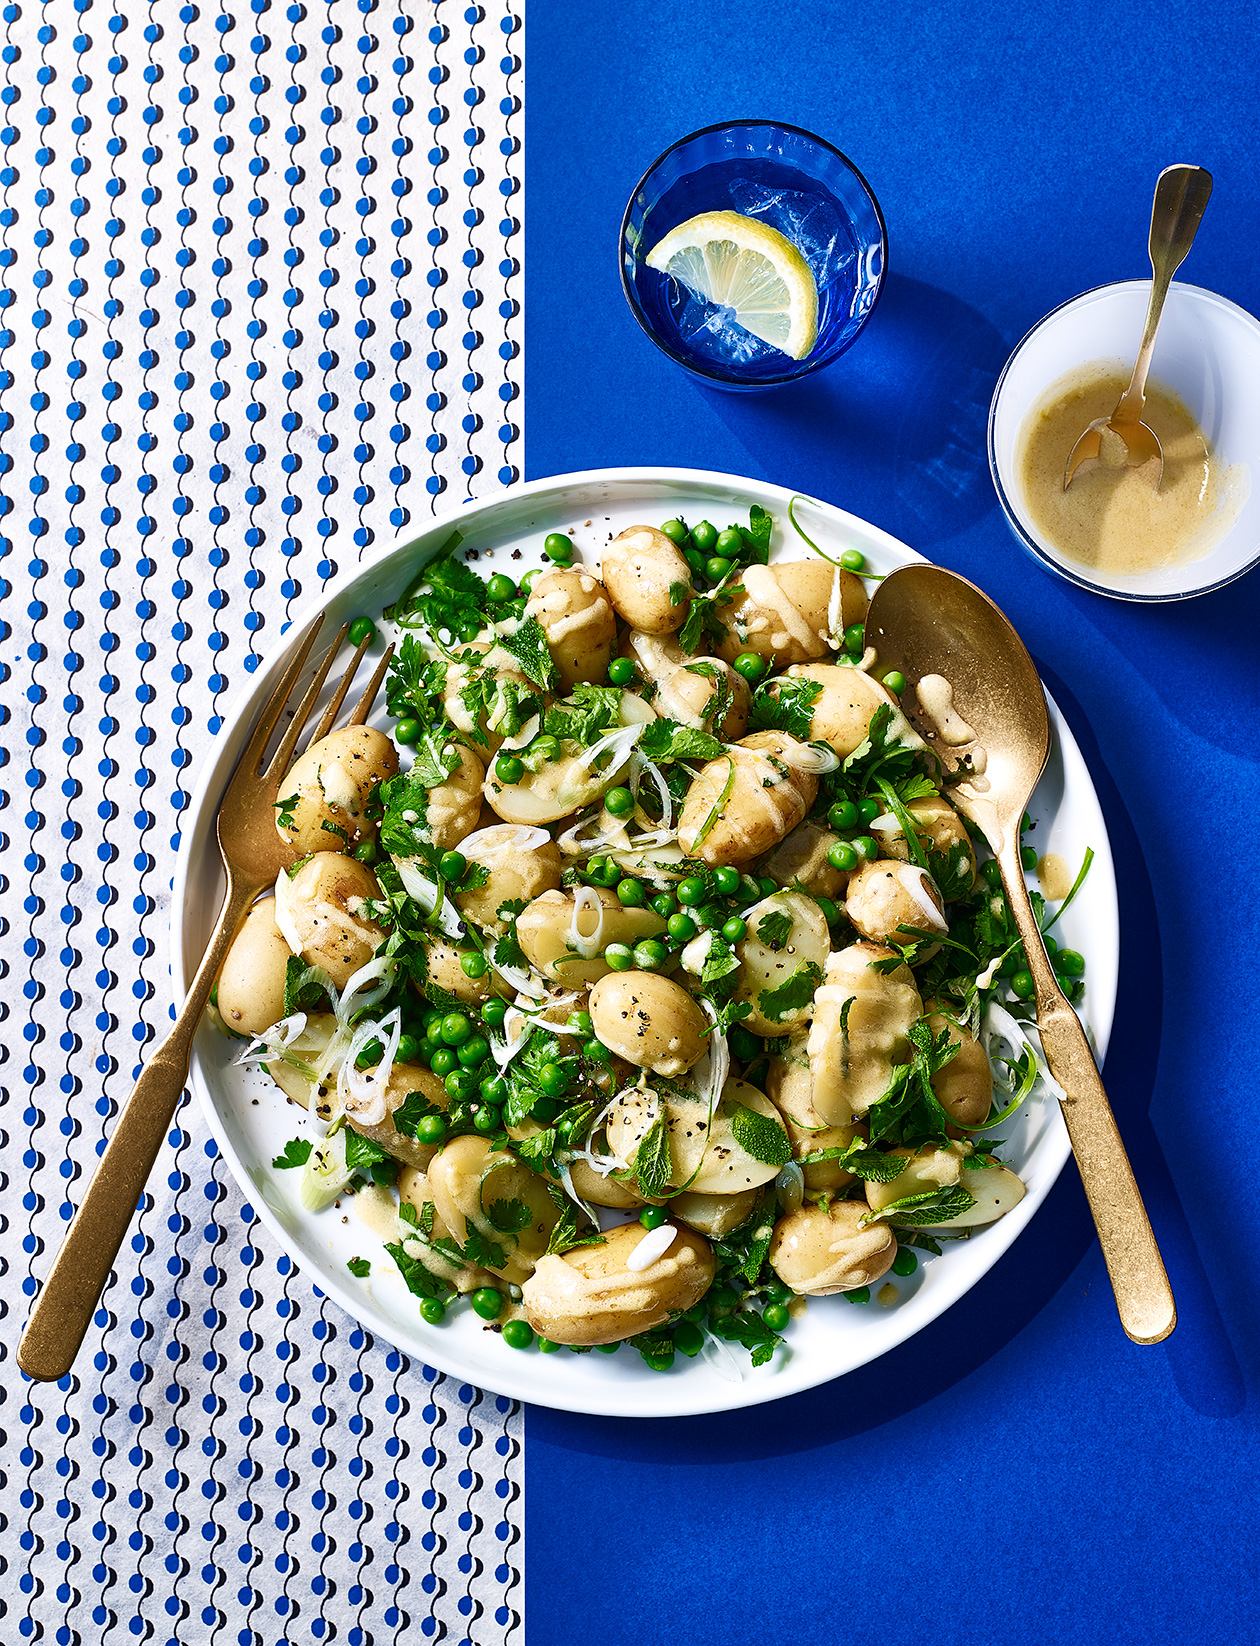 Potato And Pea Salad With Herb Dressing Recipe